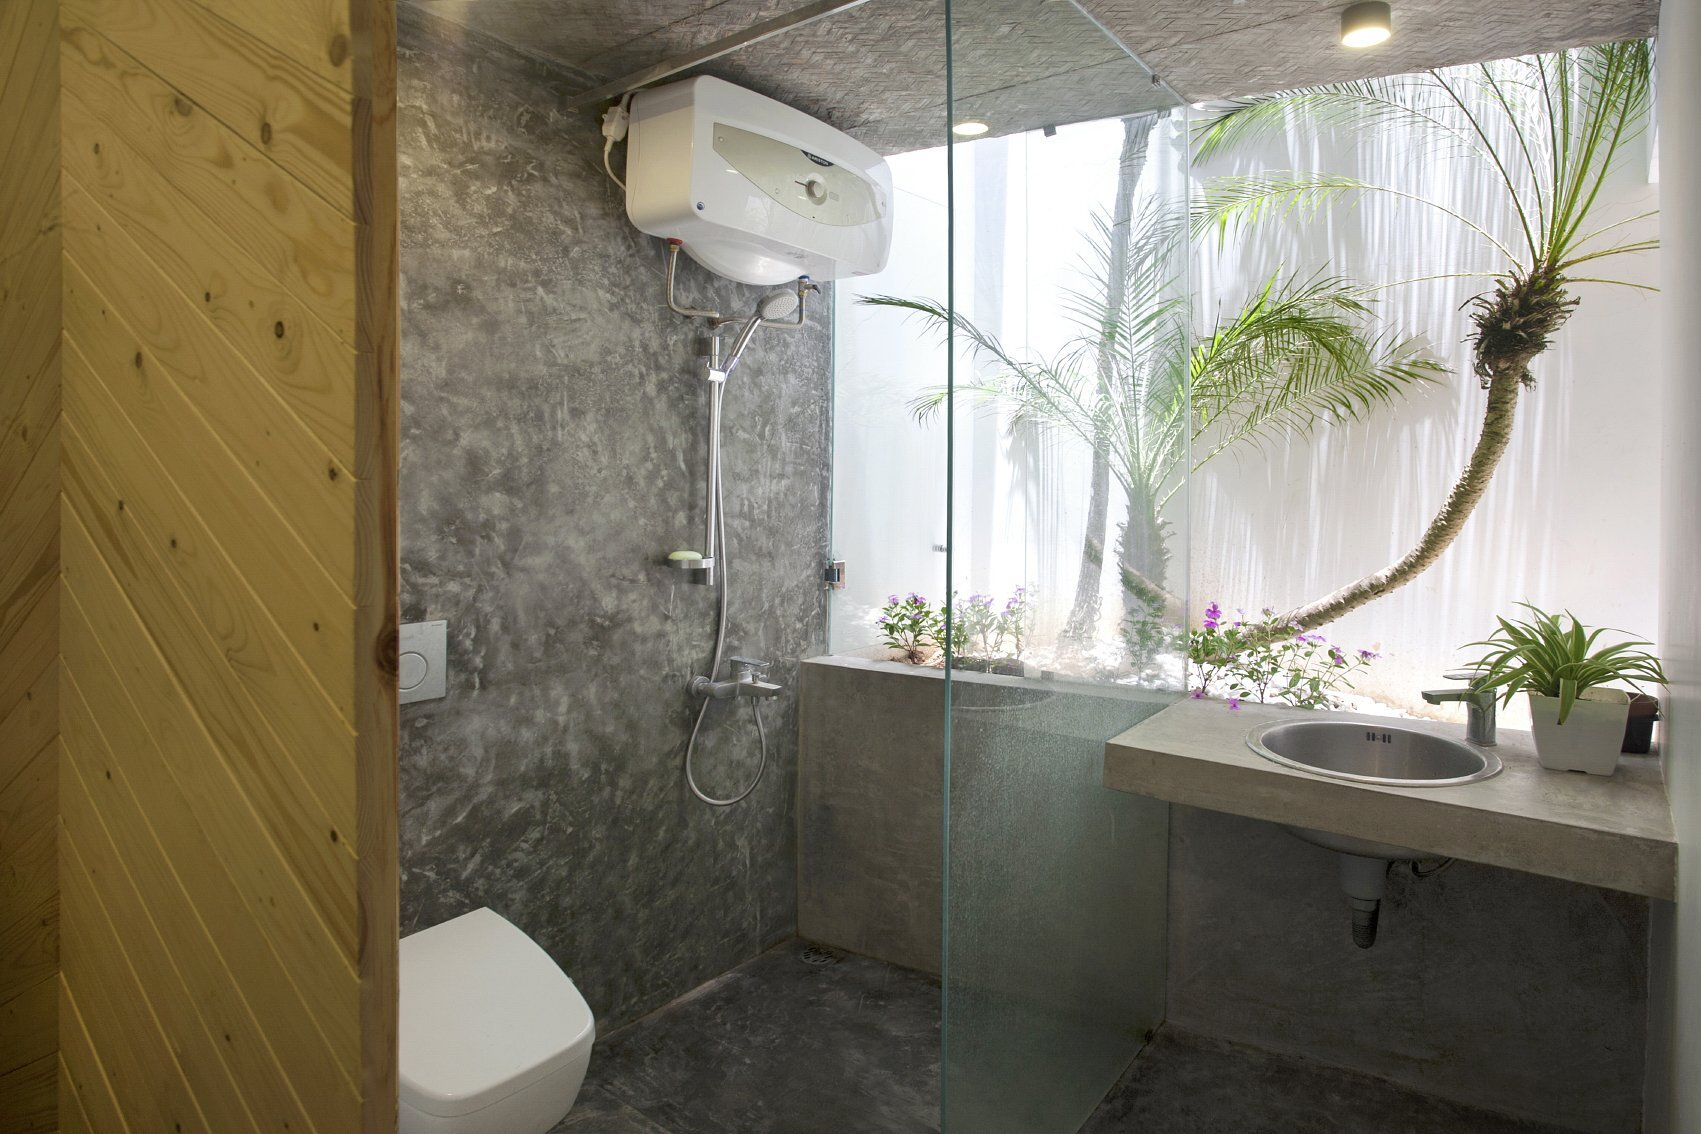 Maison T - Nghia-Architect - Vietnam - Bathroom - Humble Homes